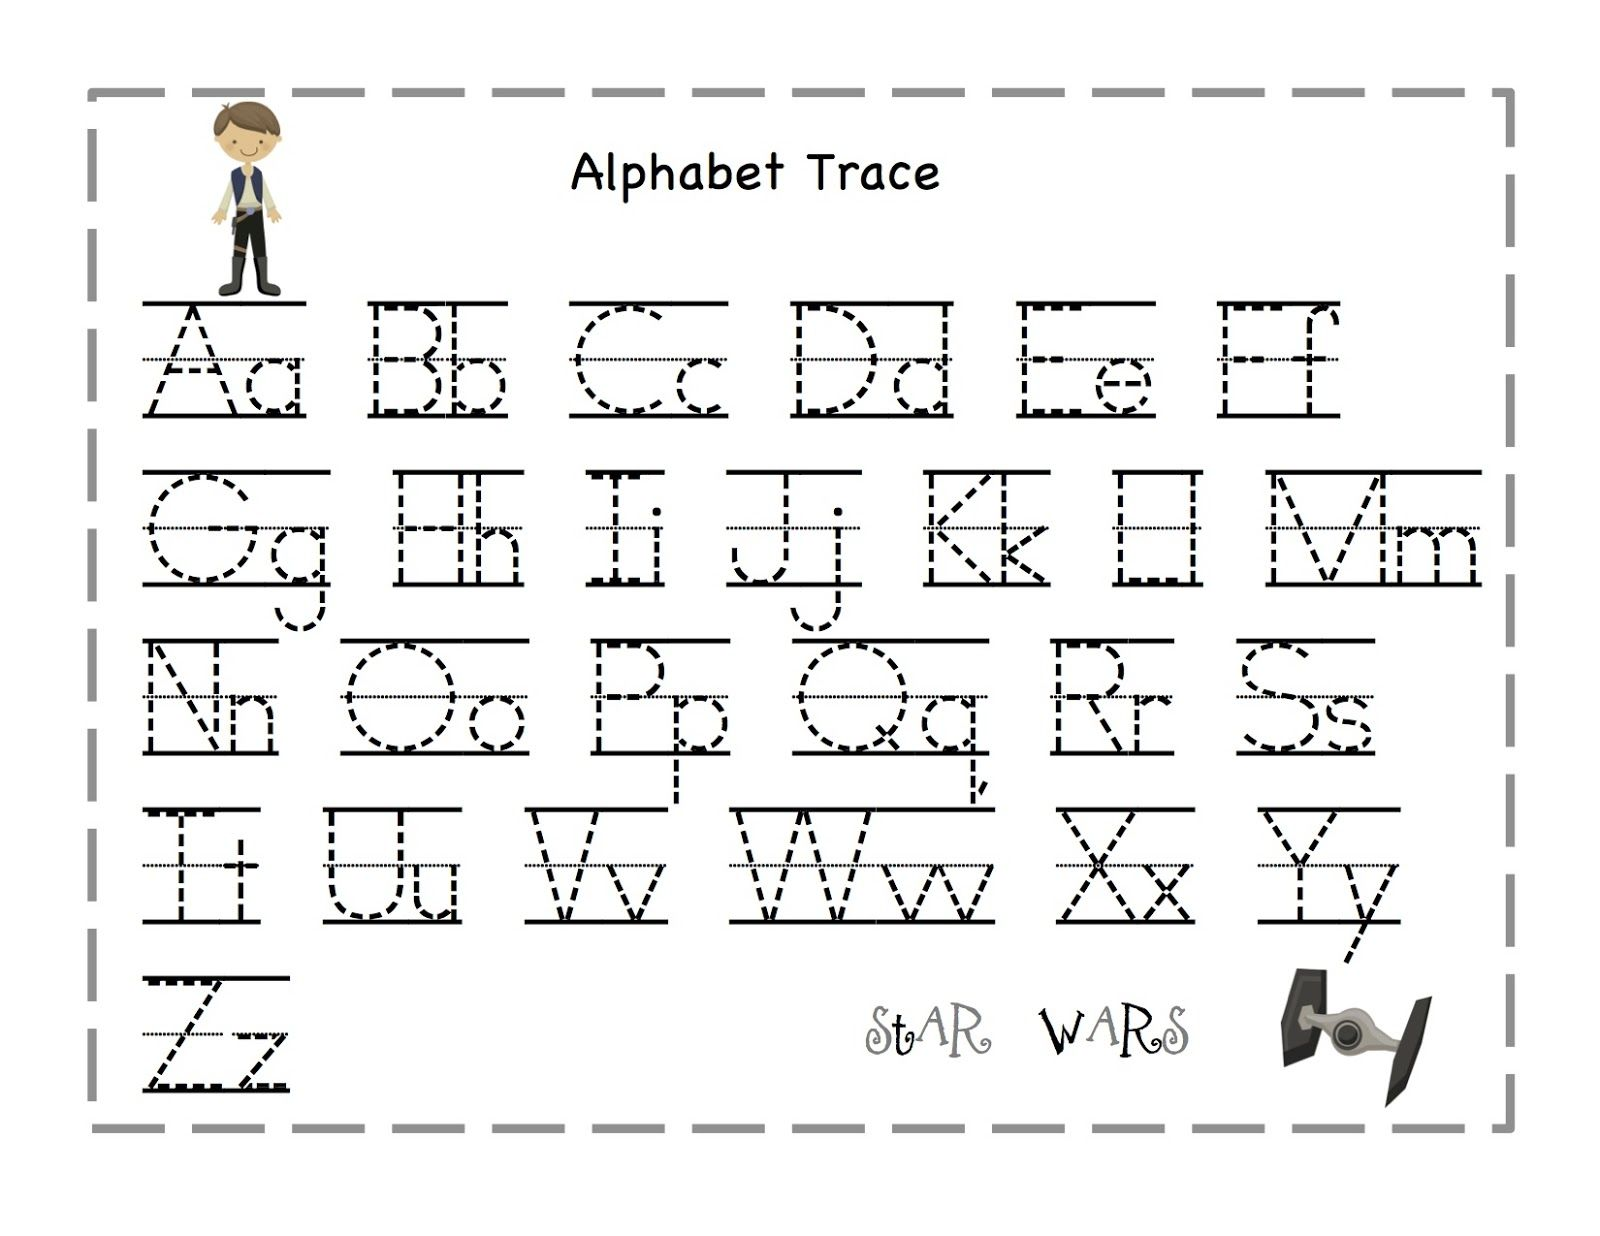 The Alphabet Tracing